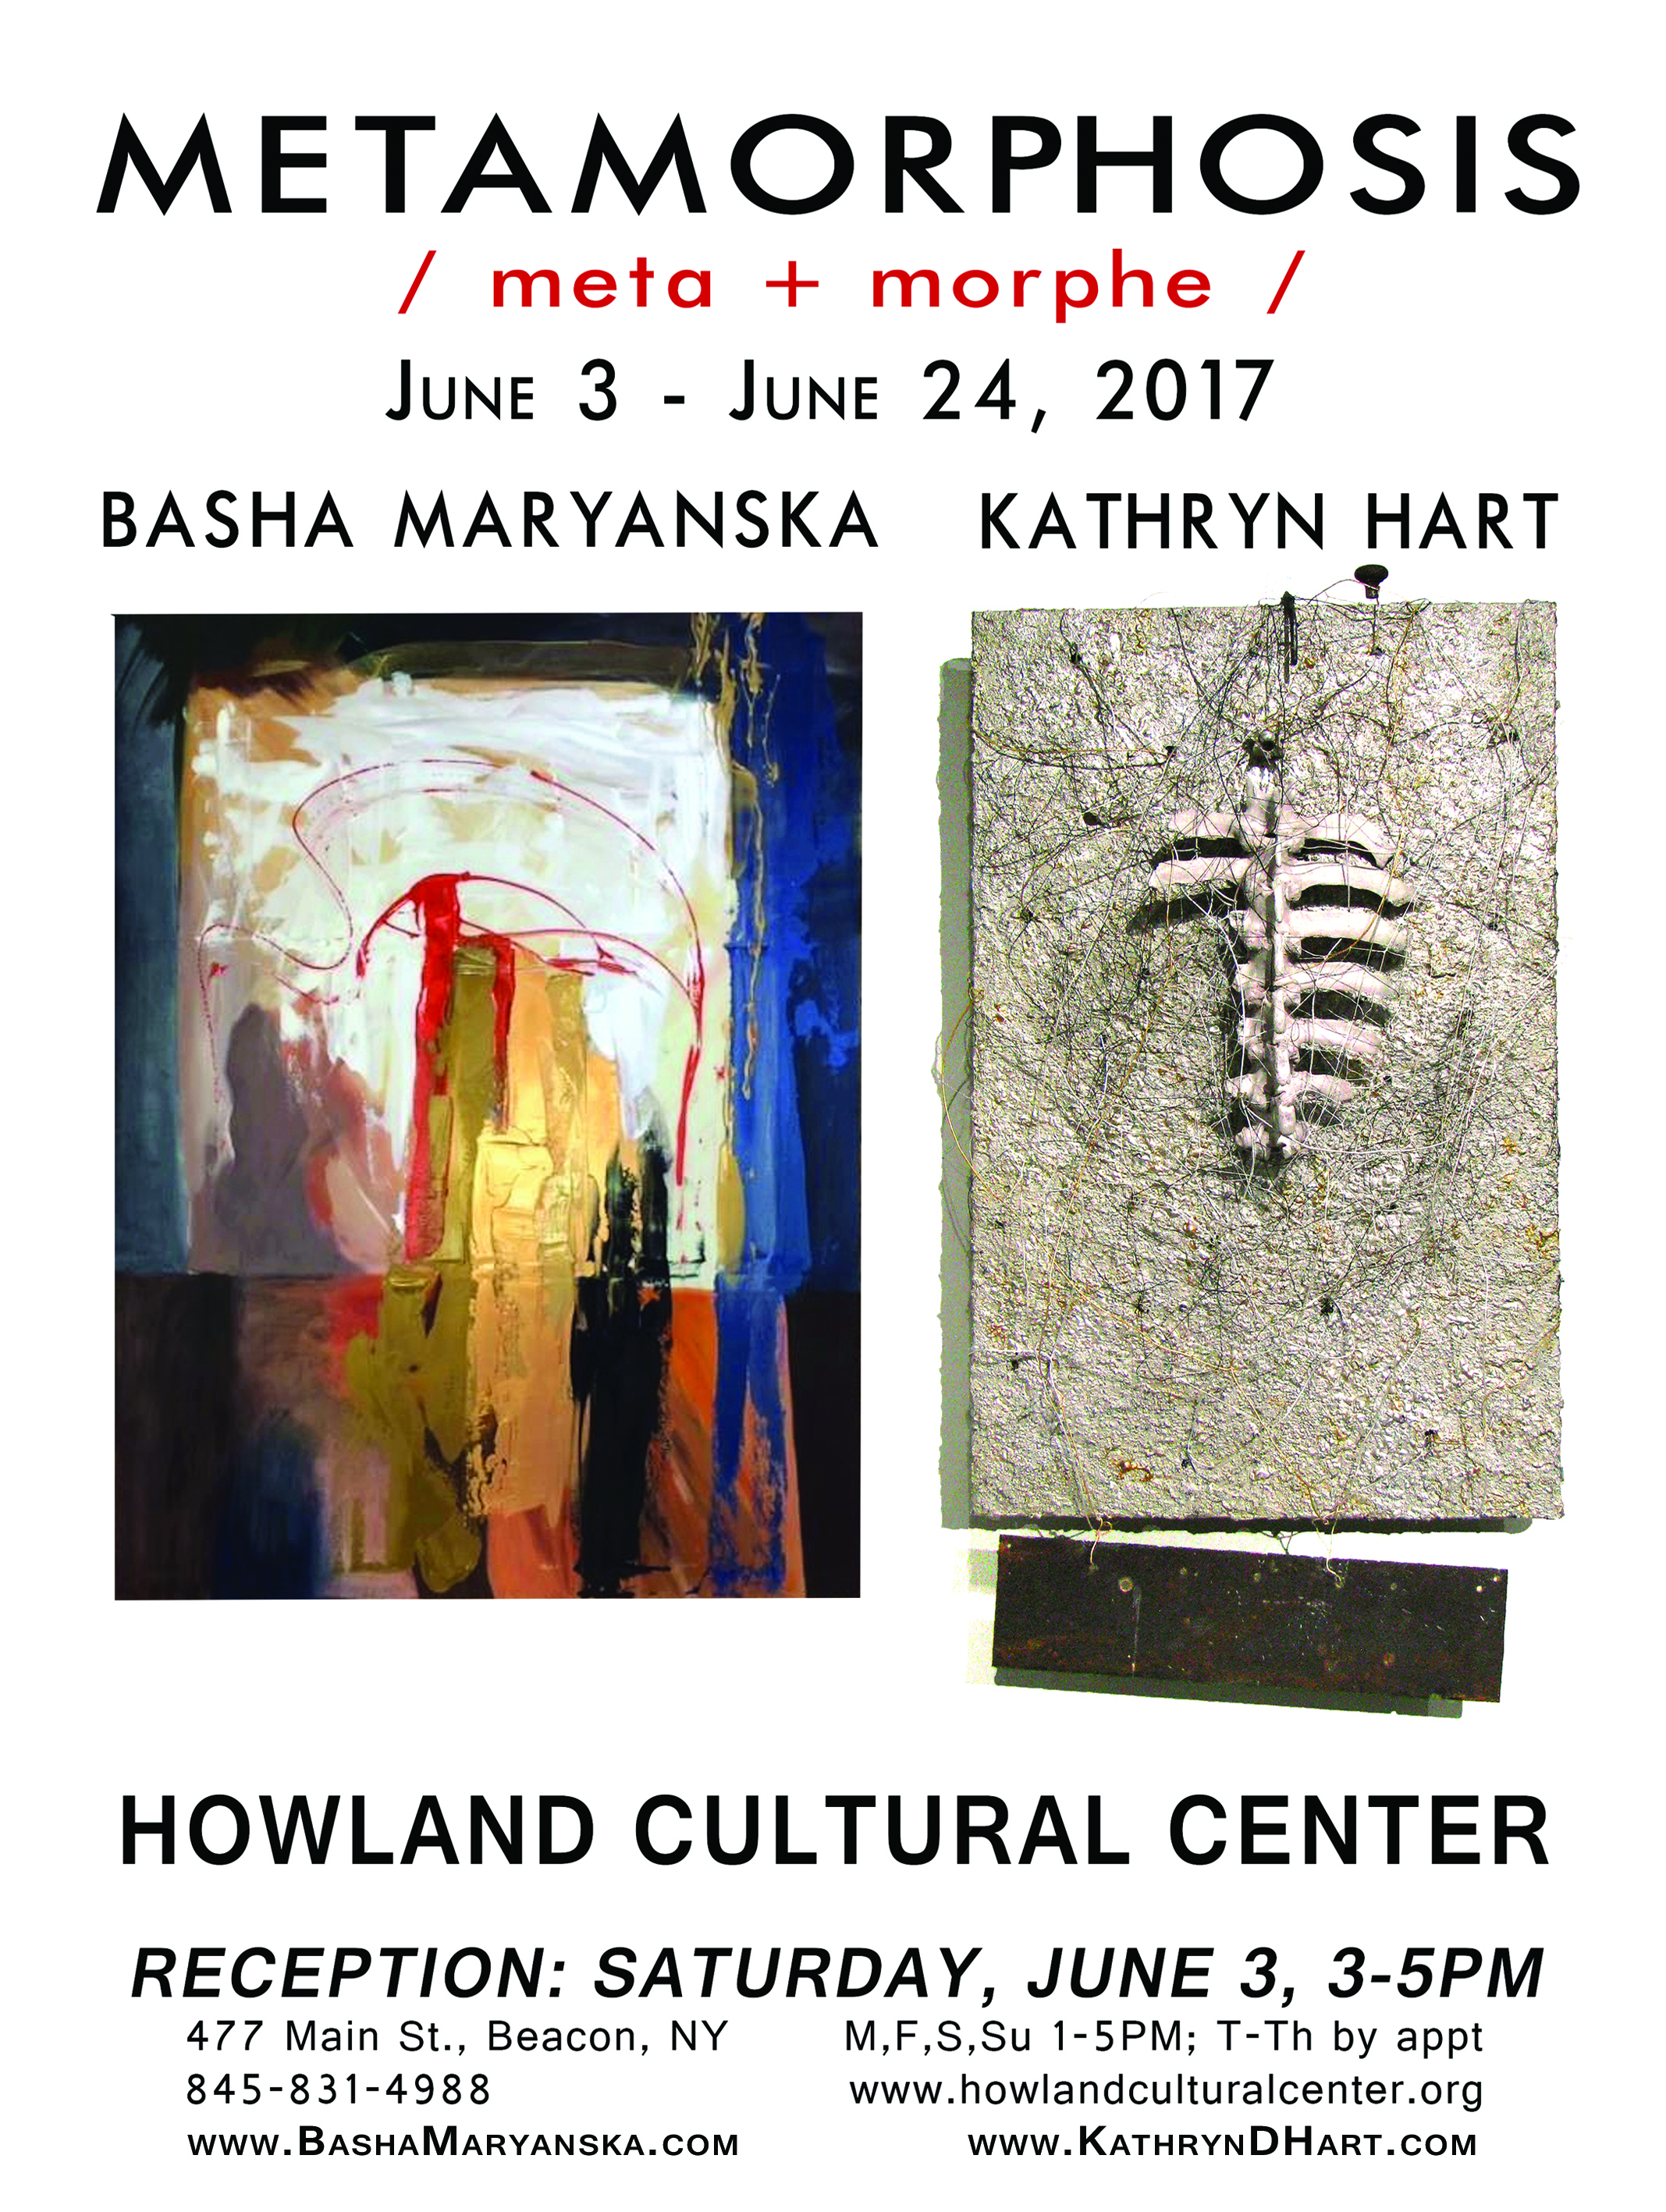 Howland Cultural Center, Kathryn Hart, Metamorphosis